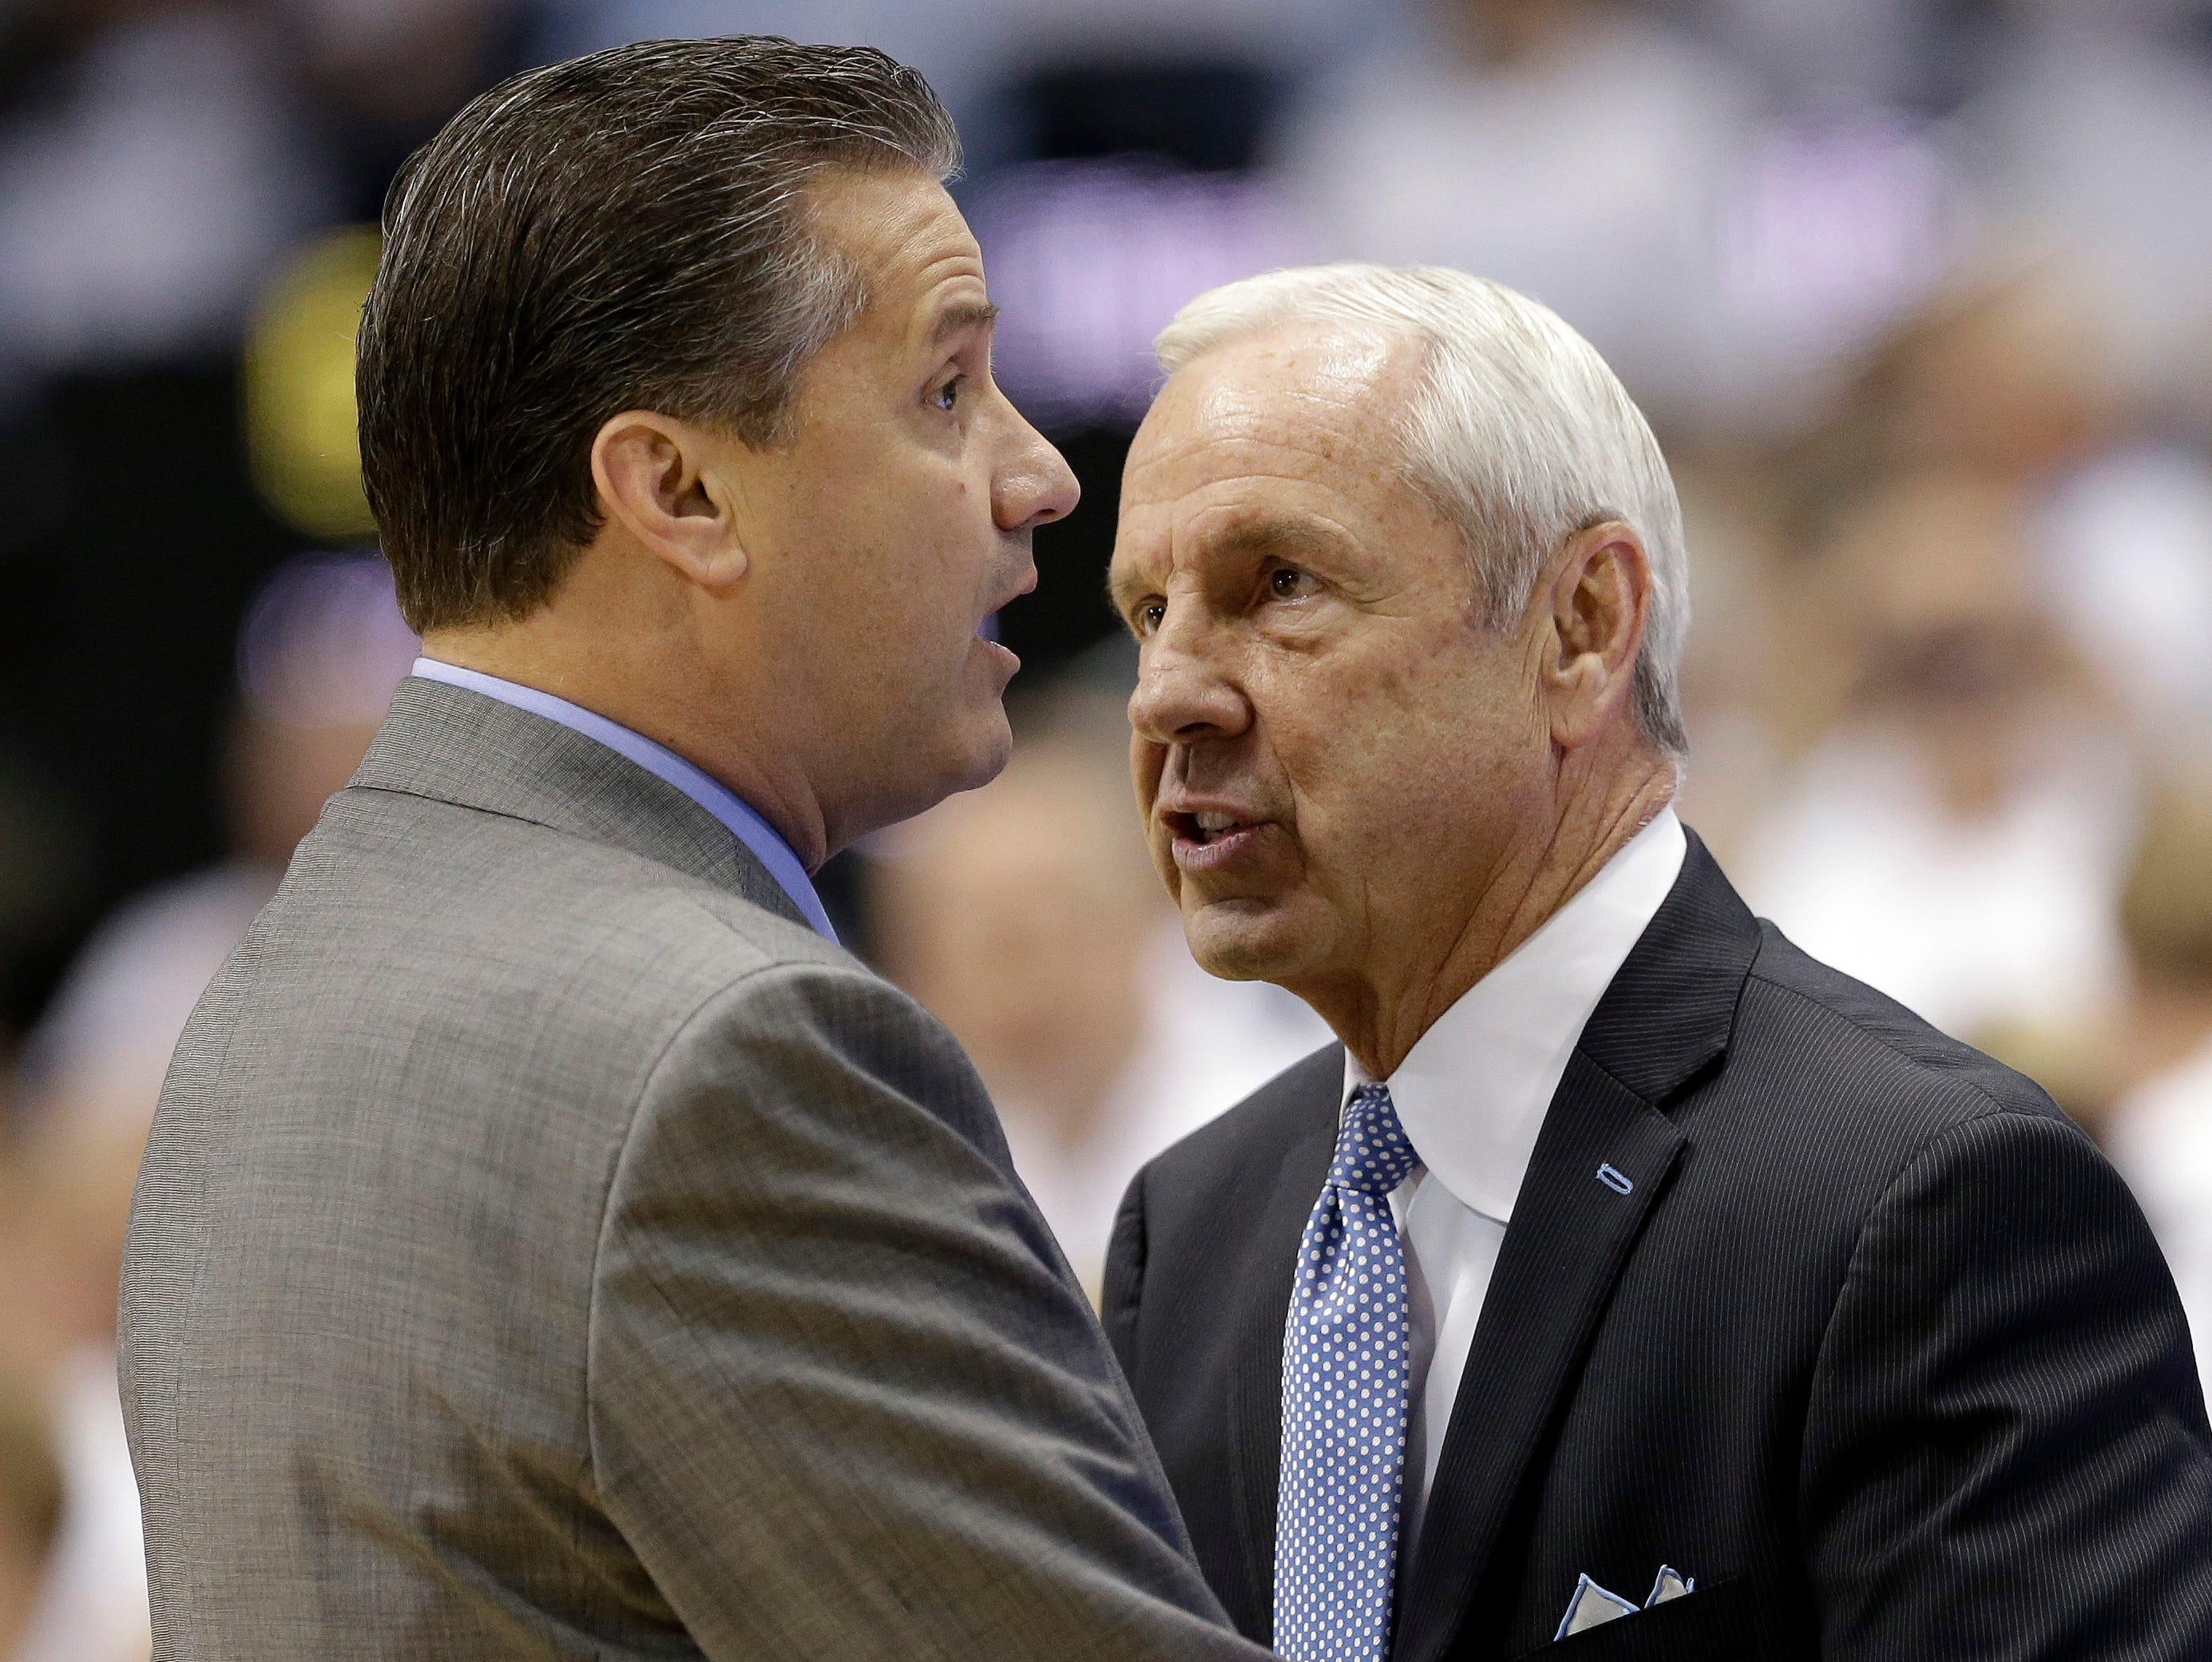 Kentucky coach John Calipari, left, and North Carolina coach Roy Williams speak before an NCAA college basketball game in Chapel Hill, N.C., Saturday, Dec. 14, 2013. (AP Photo/Gerry Broome)